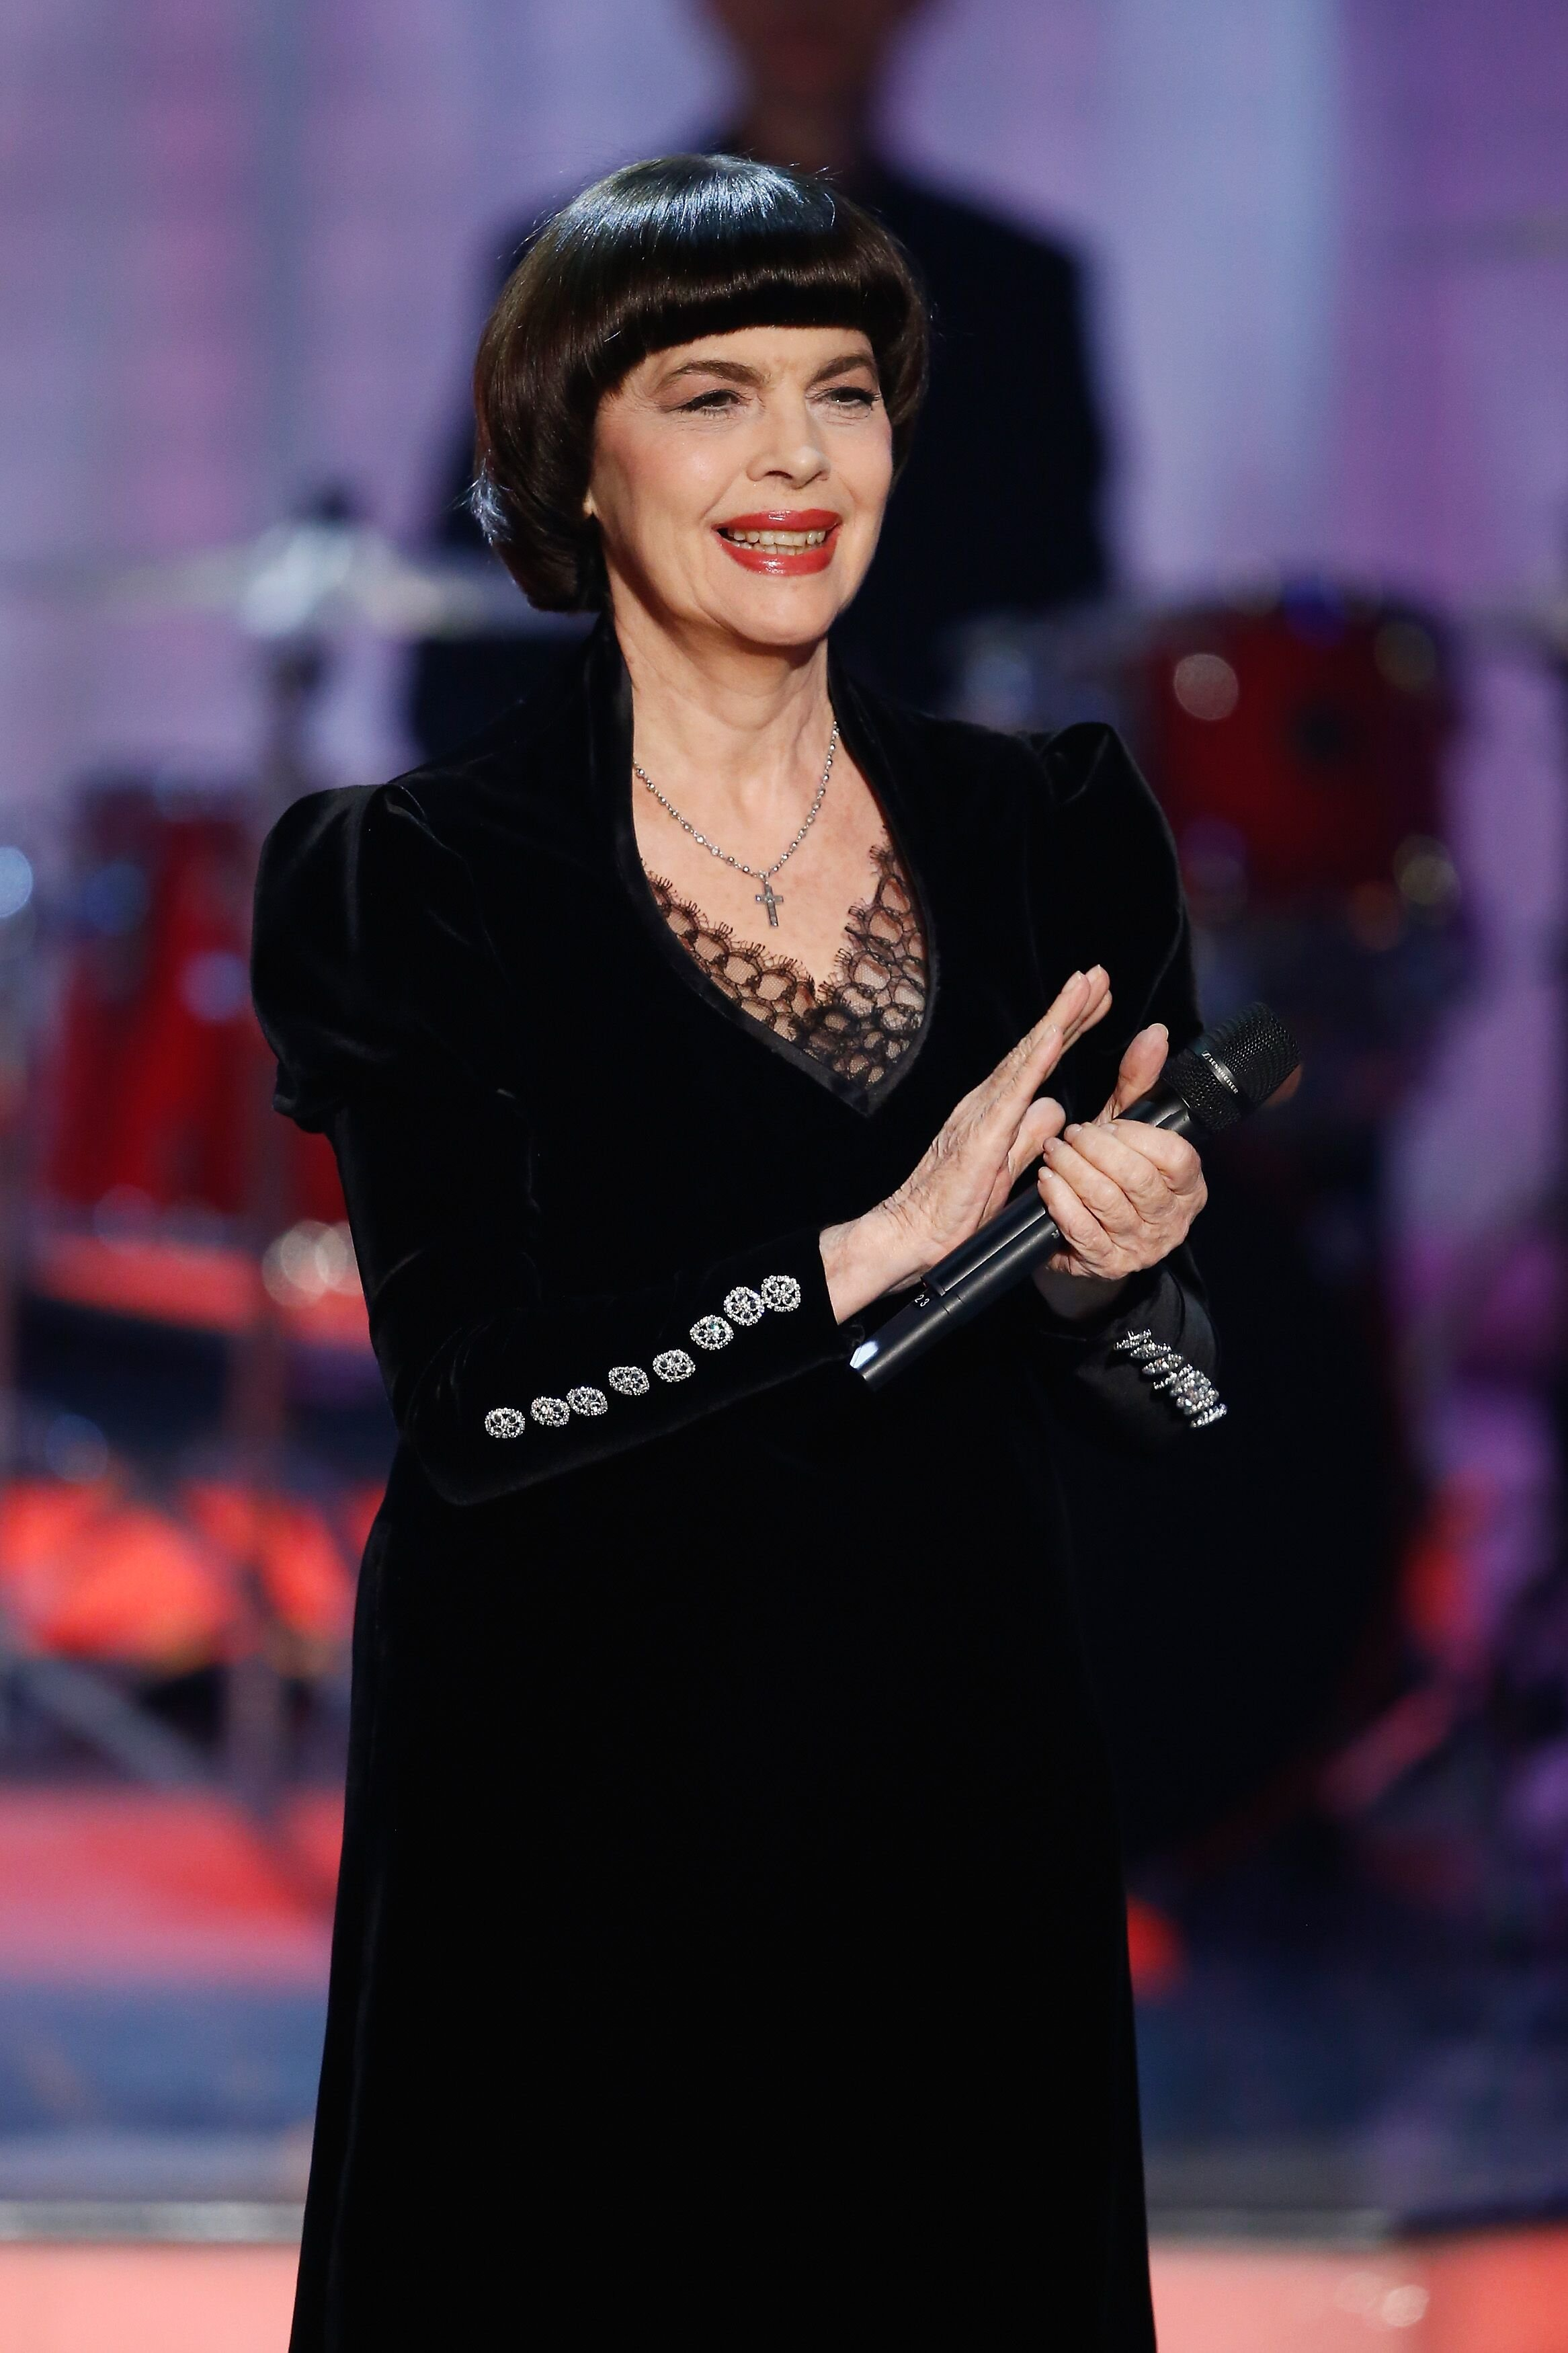 Mireille Mathieu participe au spectacle 'Willkommen bei Carmen Nebel' à la Volkswagen Halle. | Photo : GettyImage